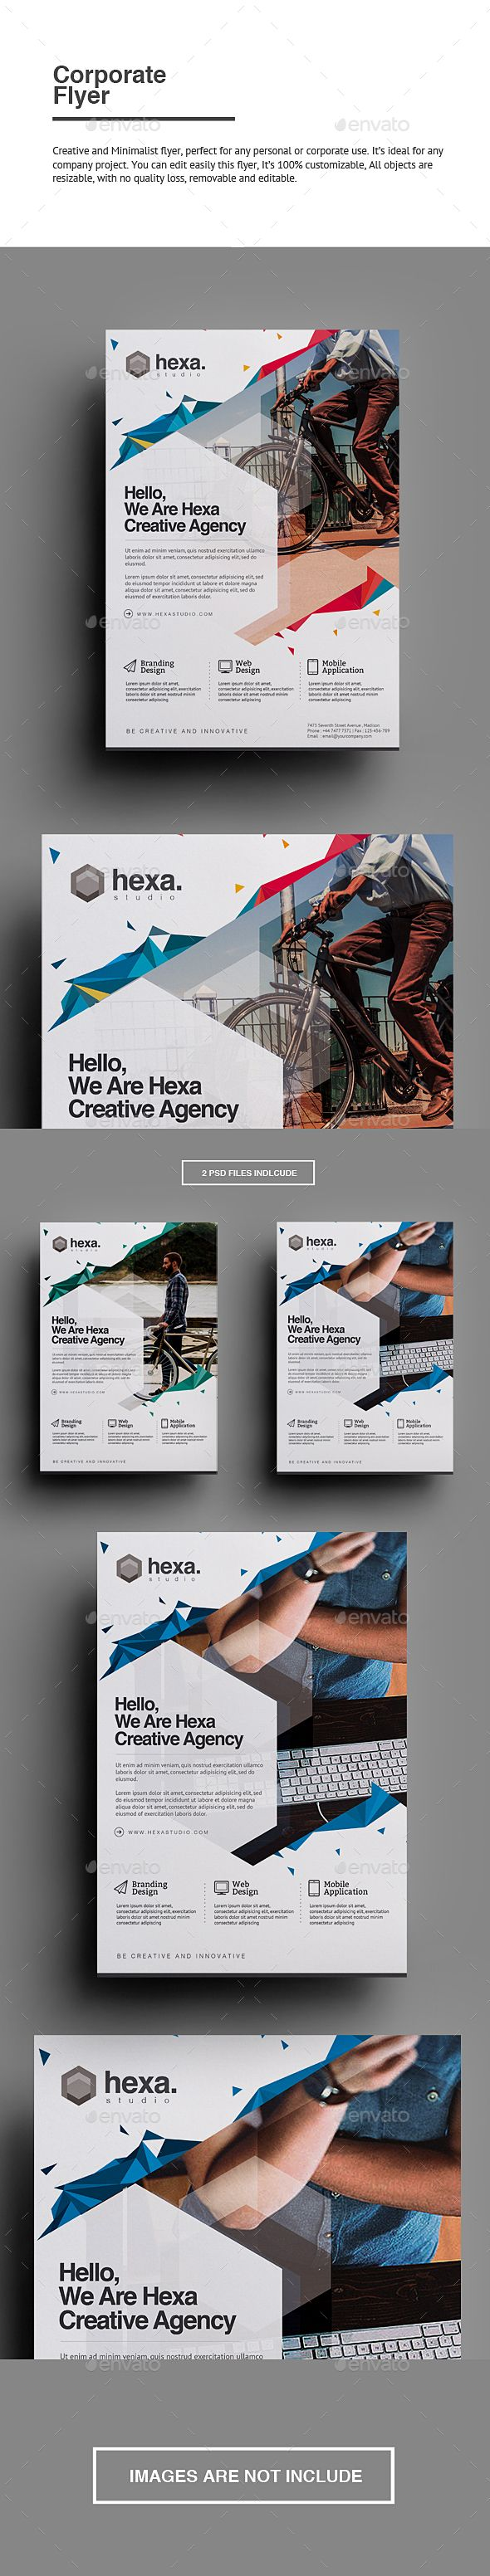 Corporate Flyer Template PSD #design Download: graphicriver.net/…